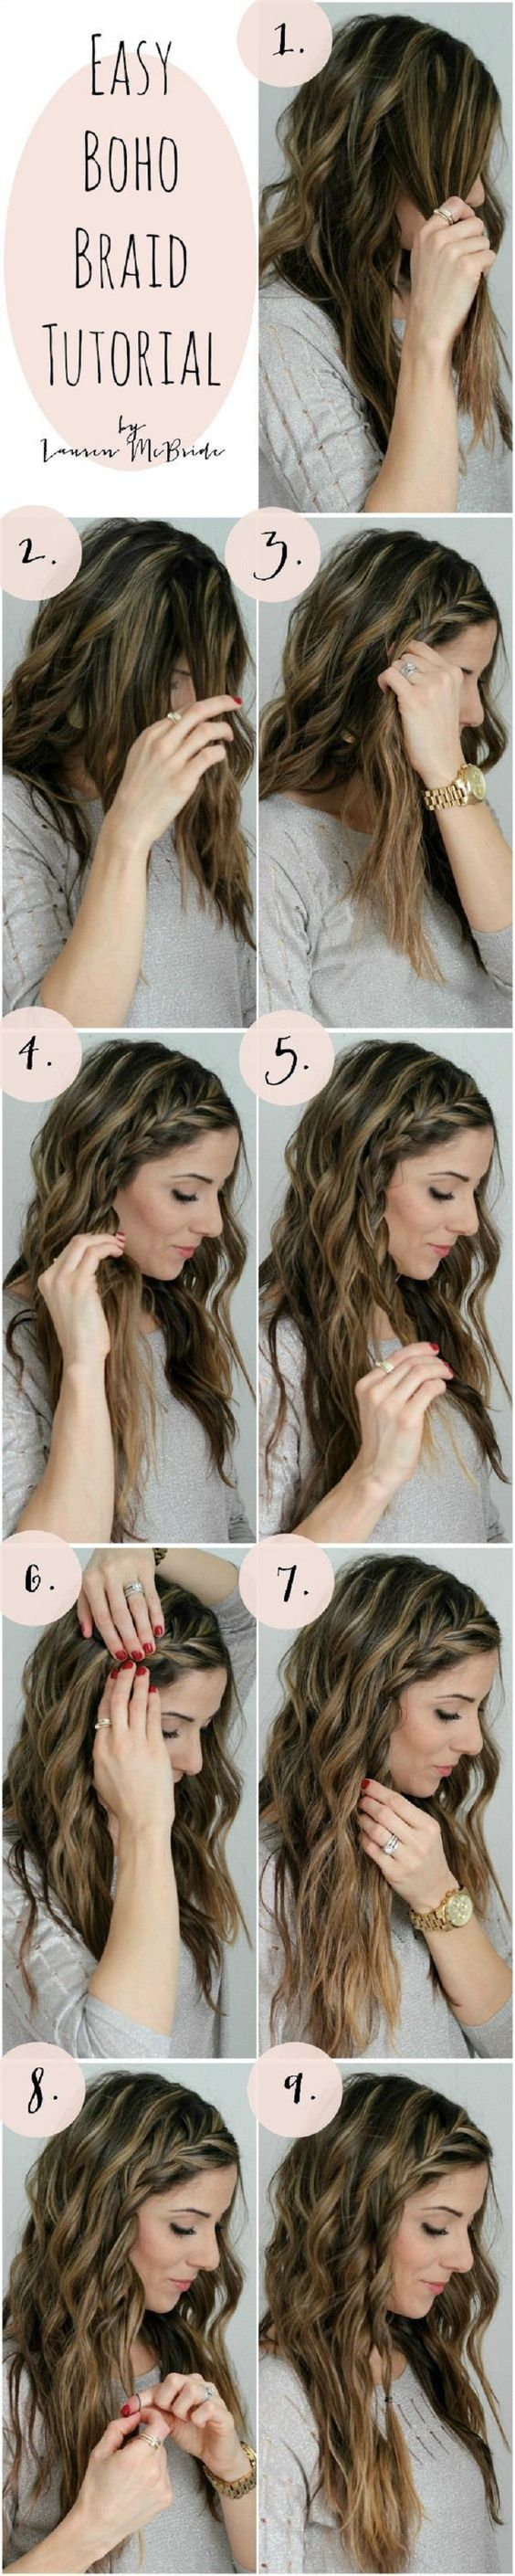 Super easy diy braided hairstyles for wedding tutorials pinterest